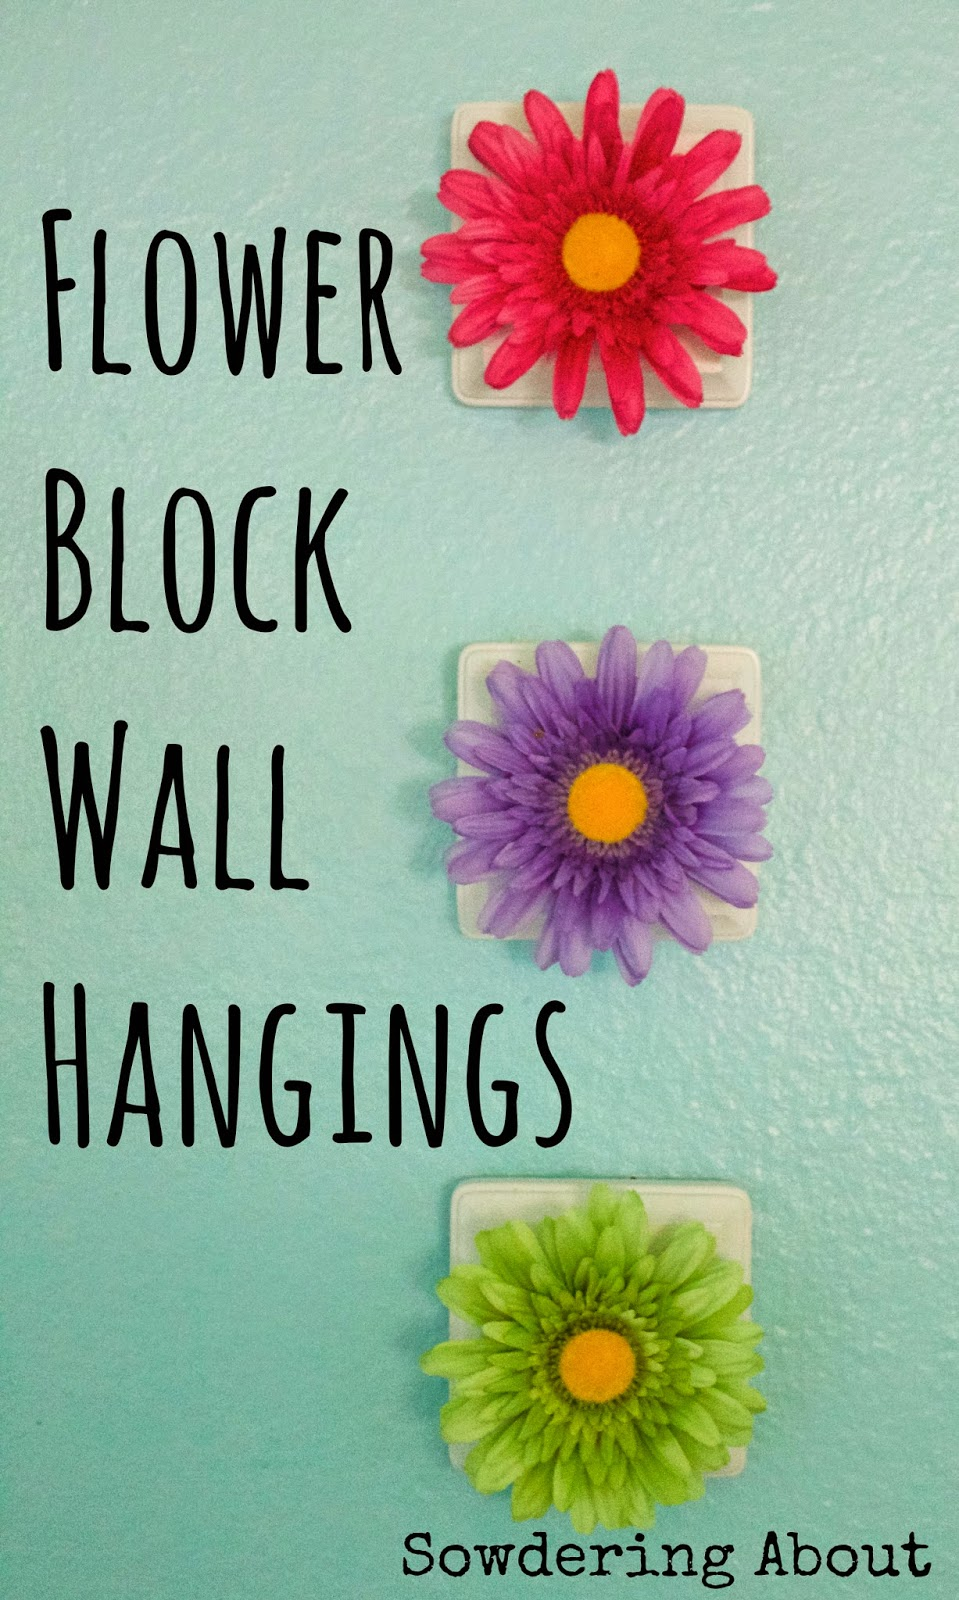 Sowdering About: Flower Wall Hangings